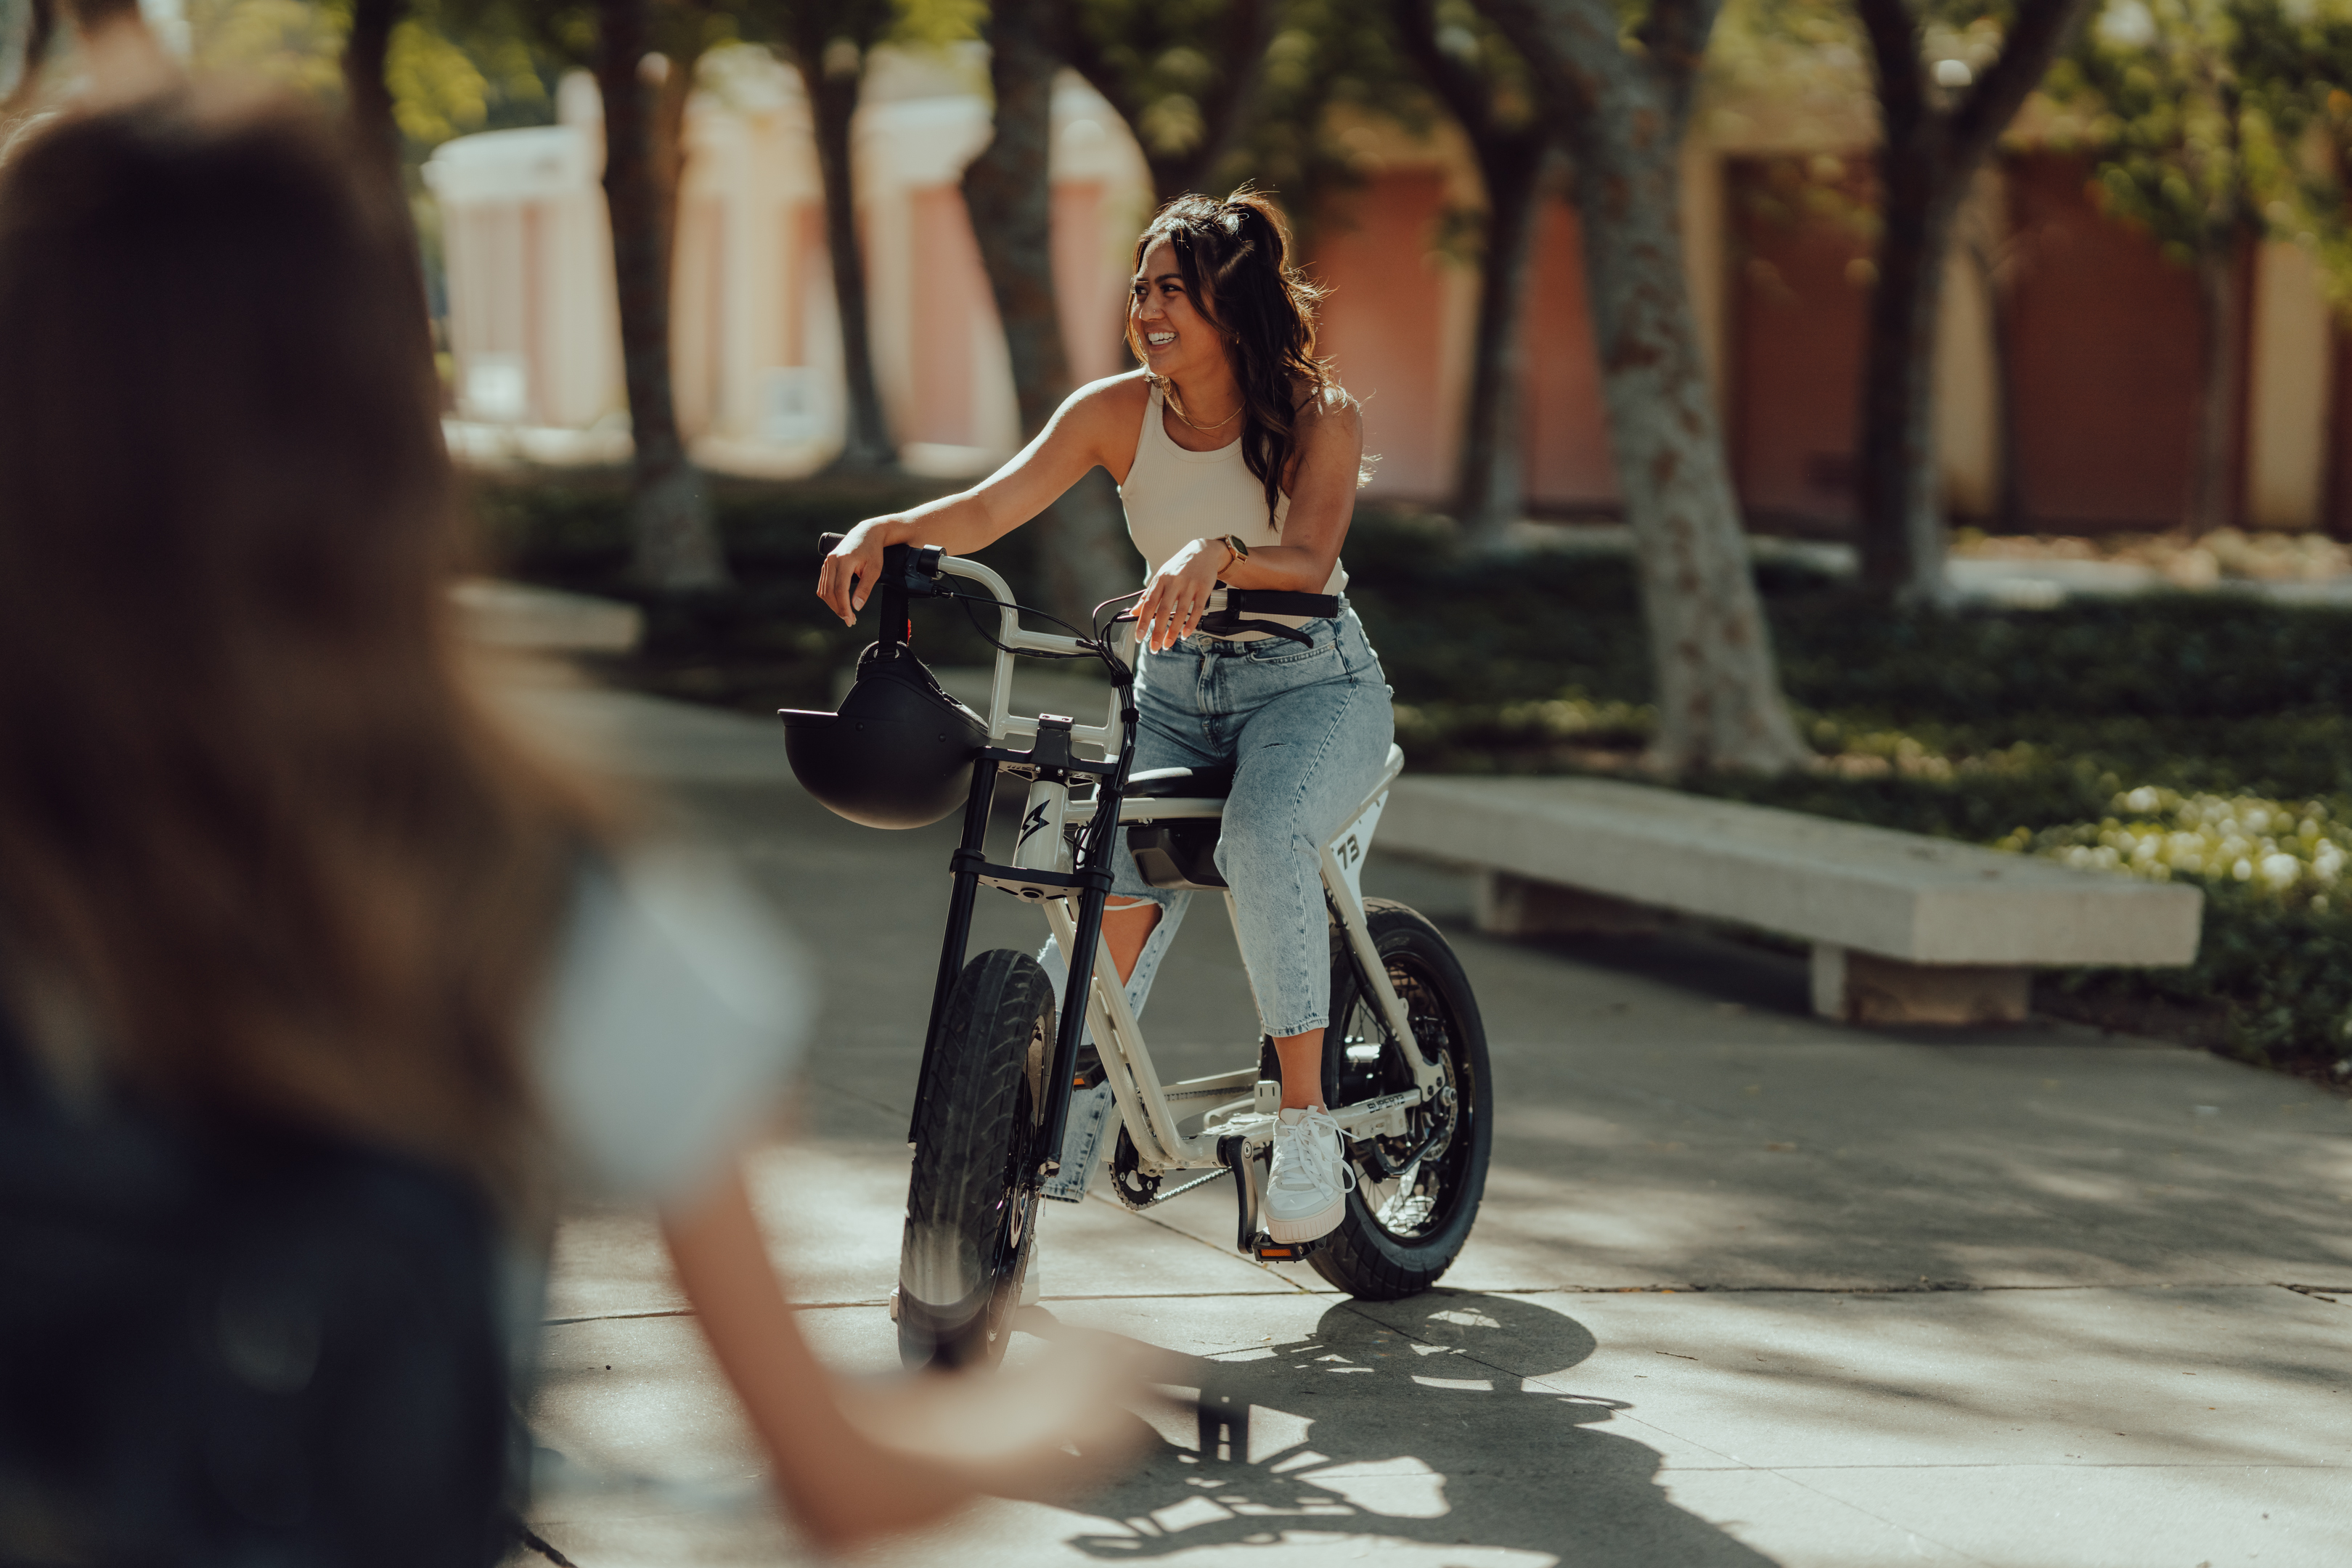 SUPER73-RX ideal for work commuters, weekend adventurers, urban exploration and even new parents thanks to longer seat and larger frame